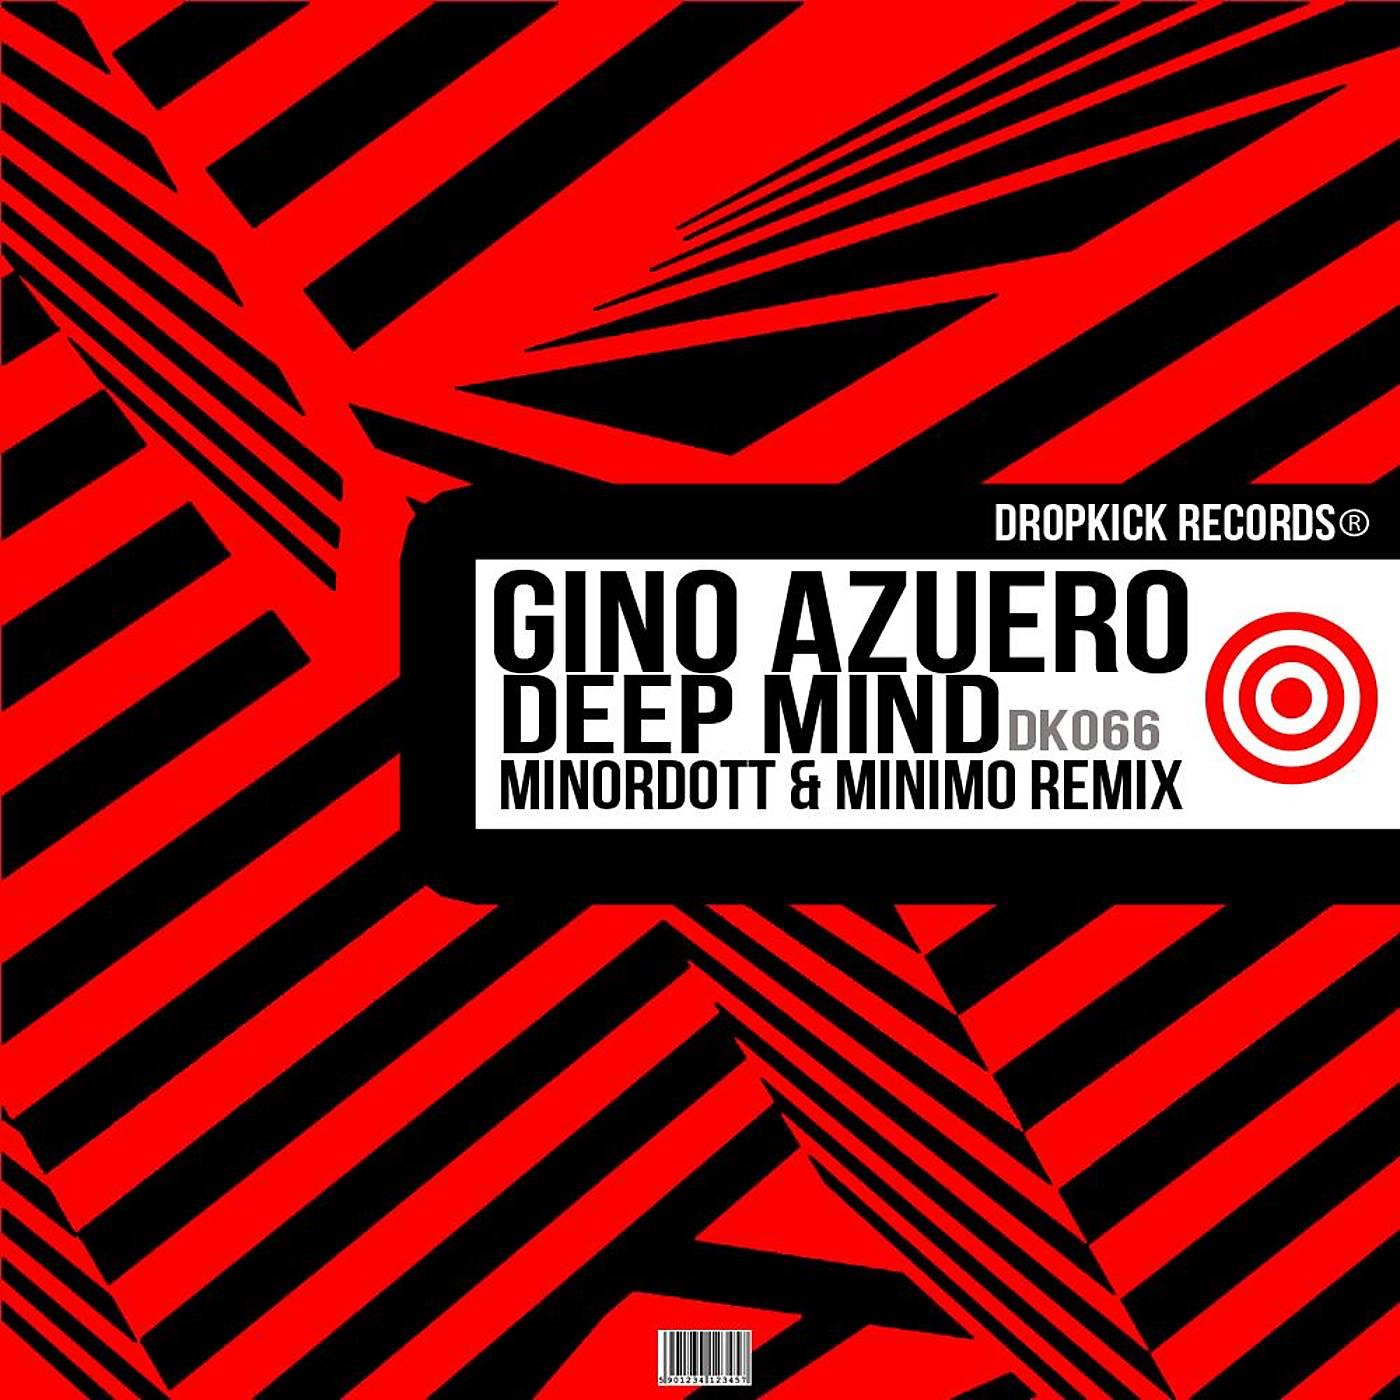 Deep Mind (Minor Dott Raw Mix)